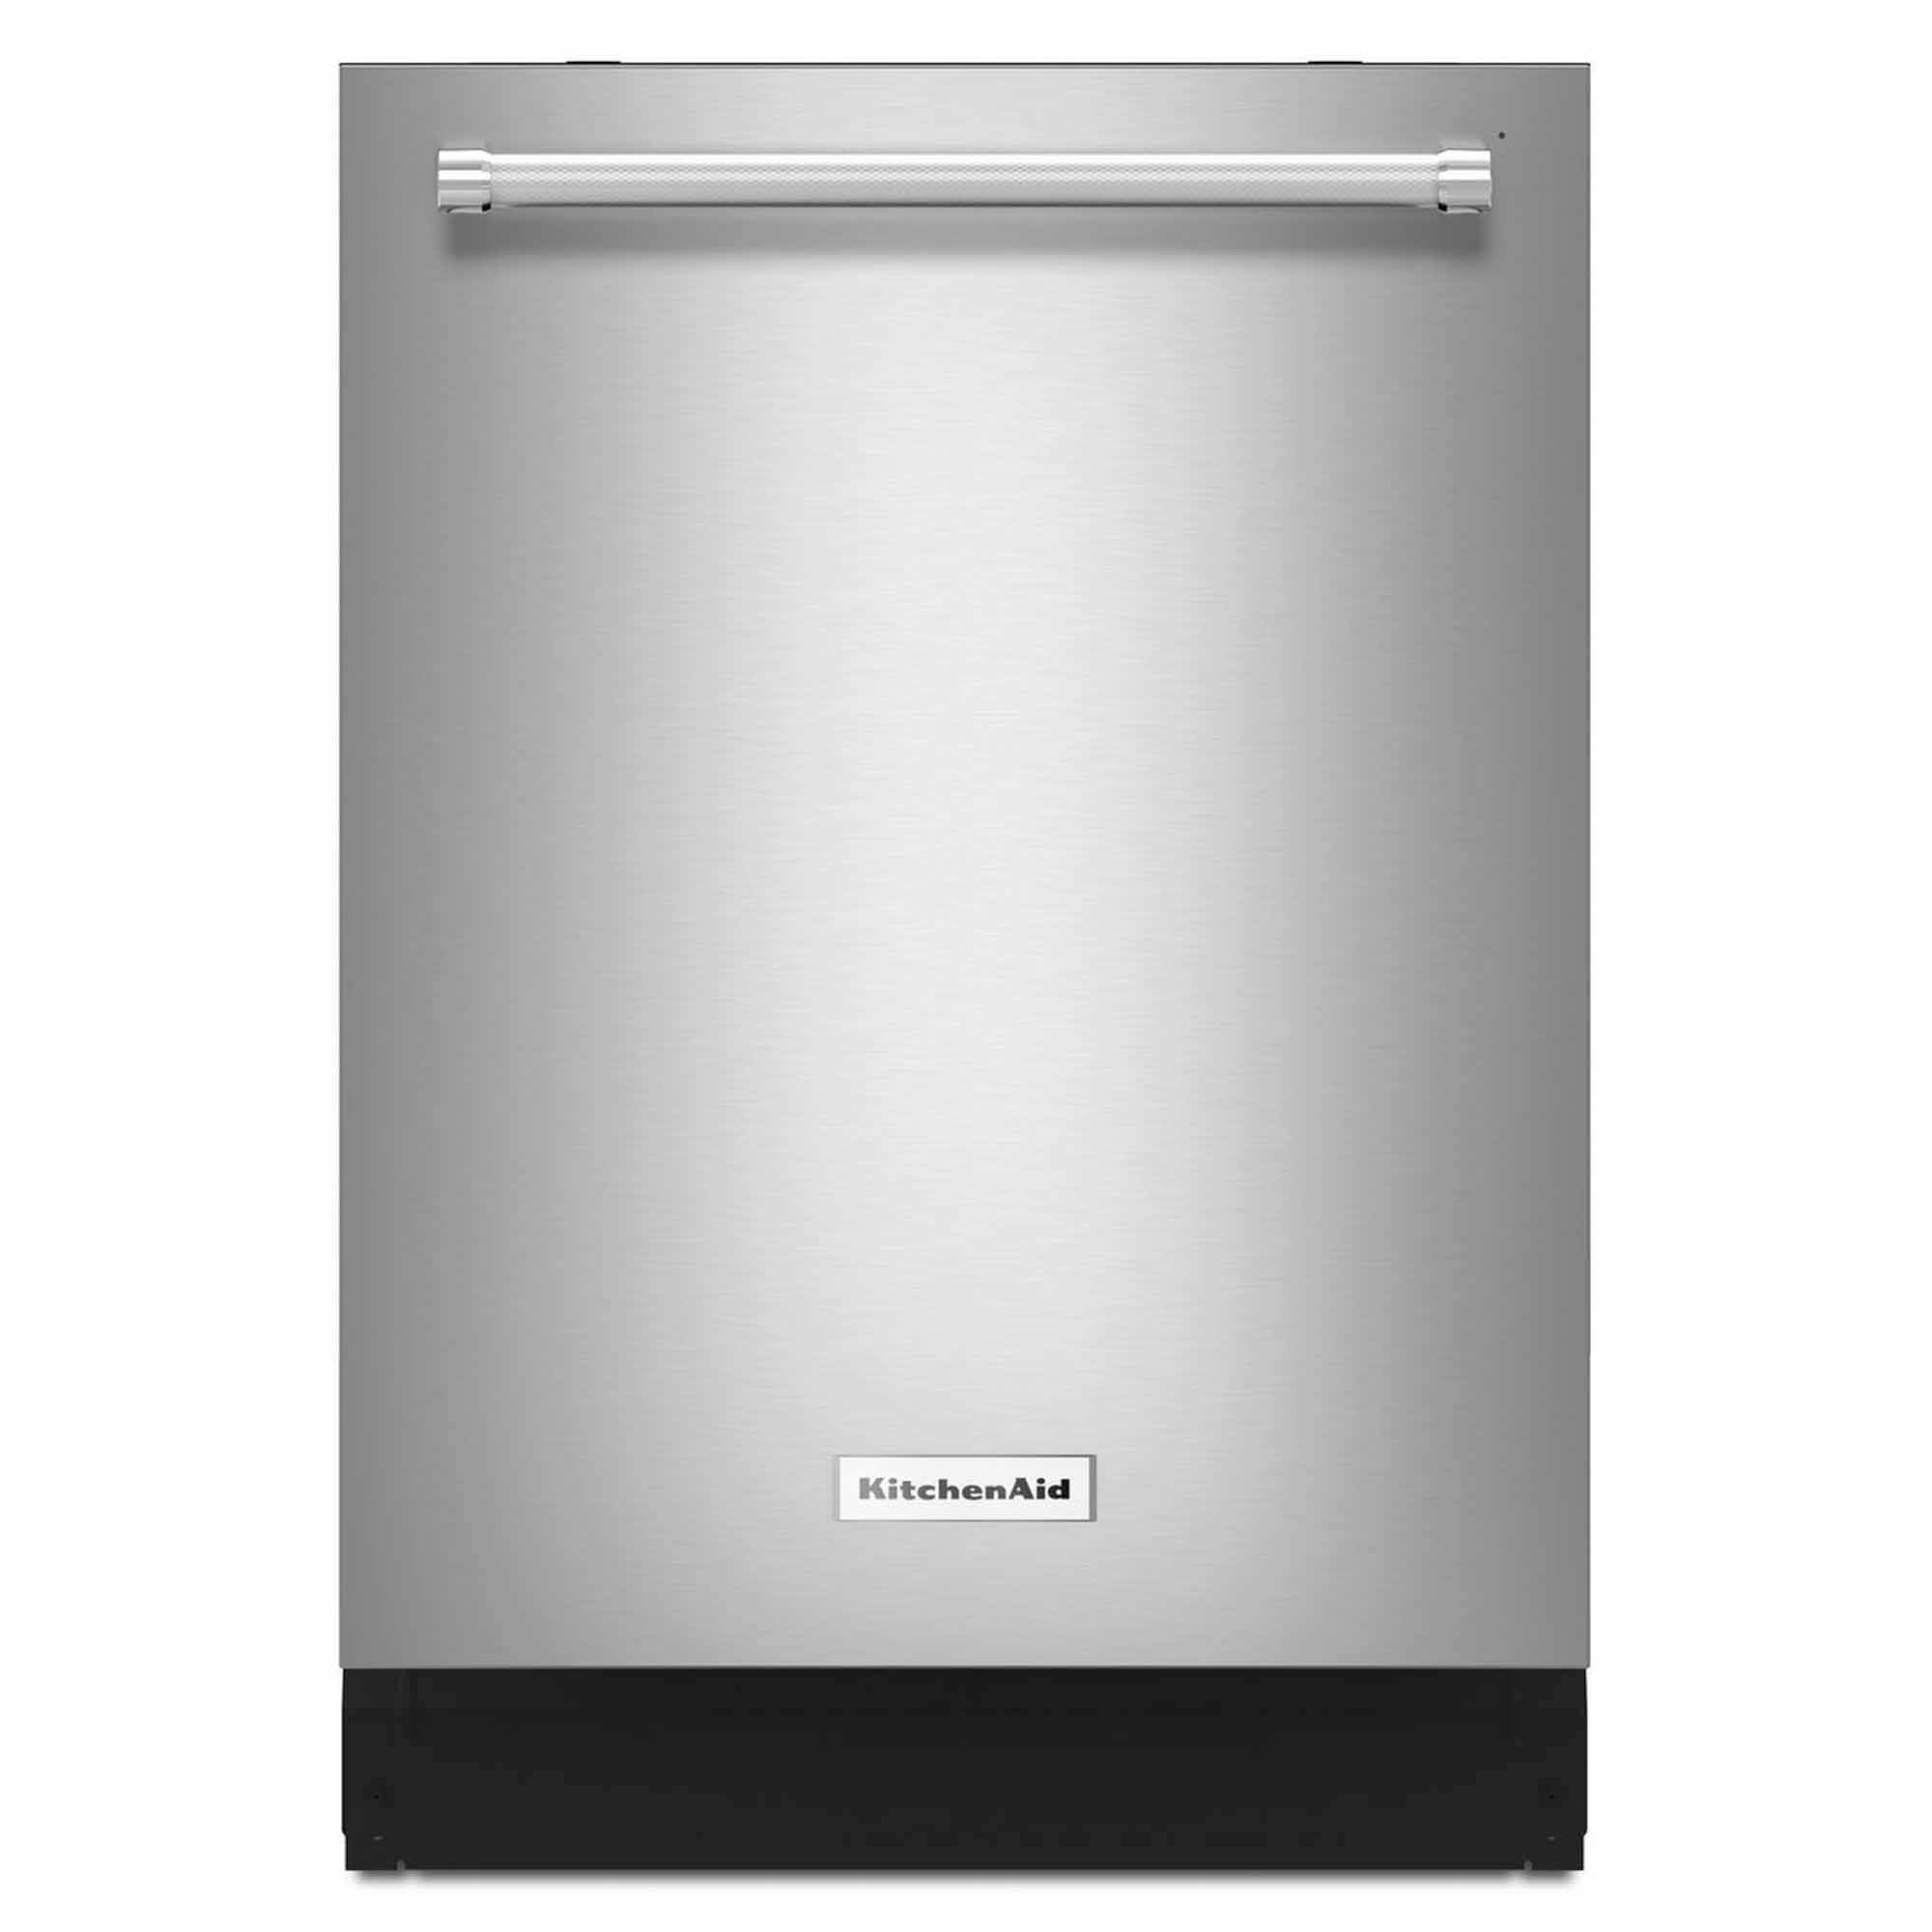 KitchenAid KDTE104ESS 24 Top Control Built-In Dishwasher - Stainless Steel